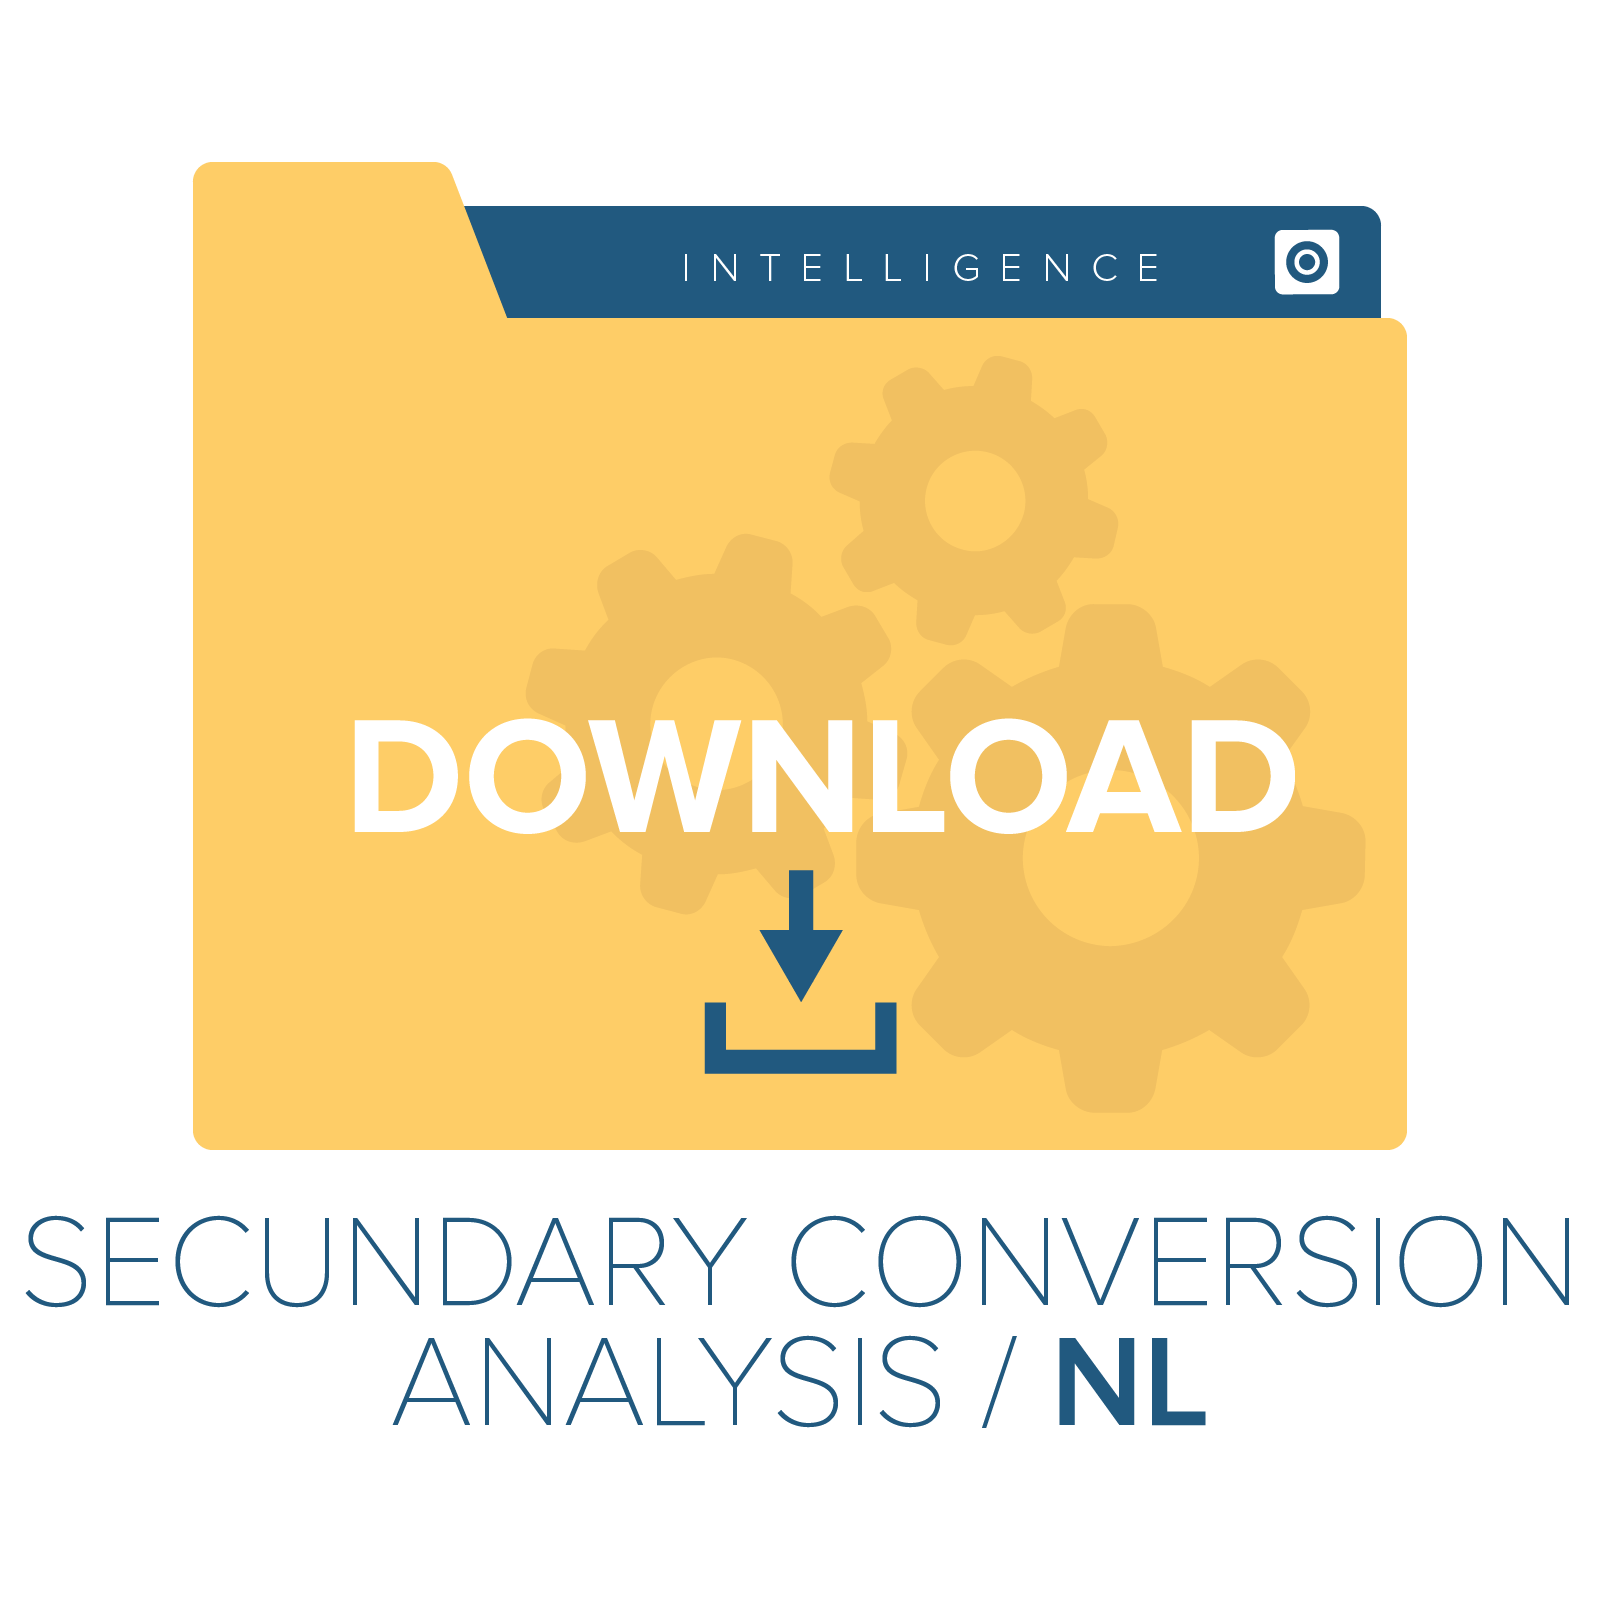 secundary-conversion-analysis-nl.png